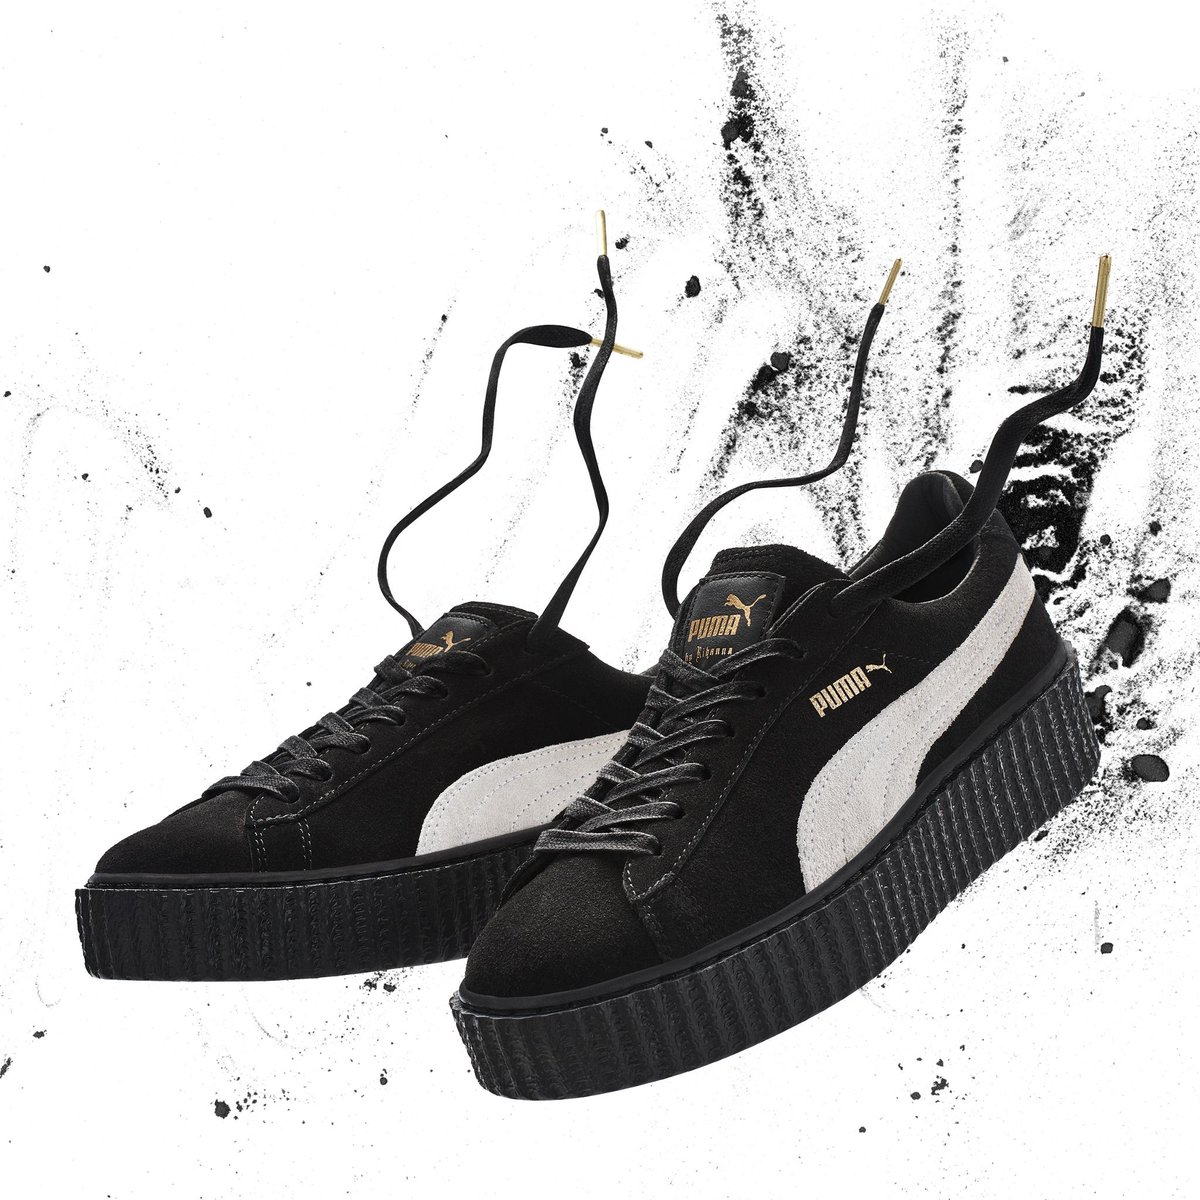 7a49ca4721d rihanna reissues thecreeper in its original colorways get the sneaker from  puma here .